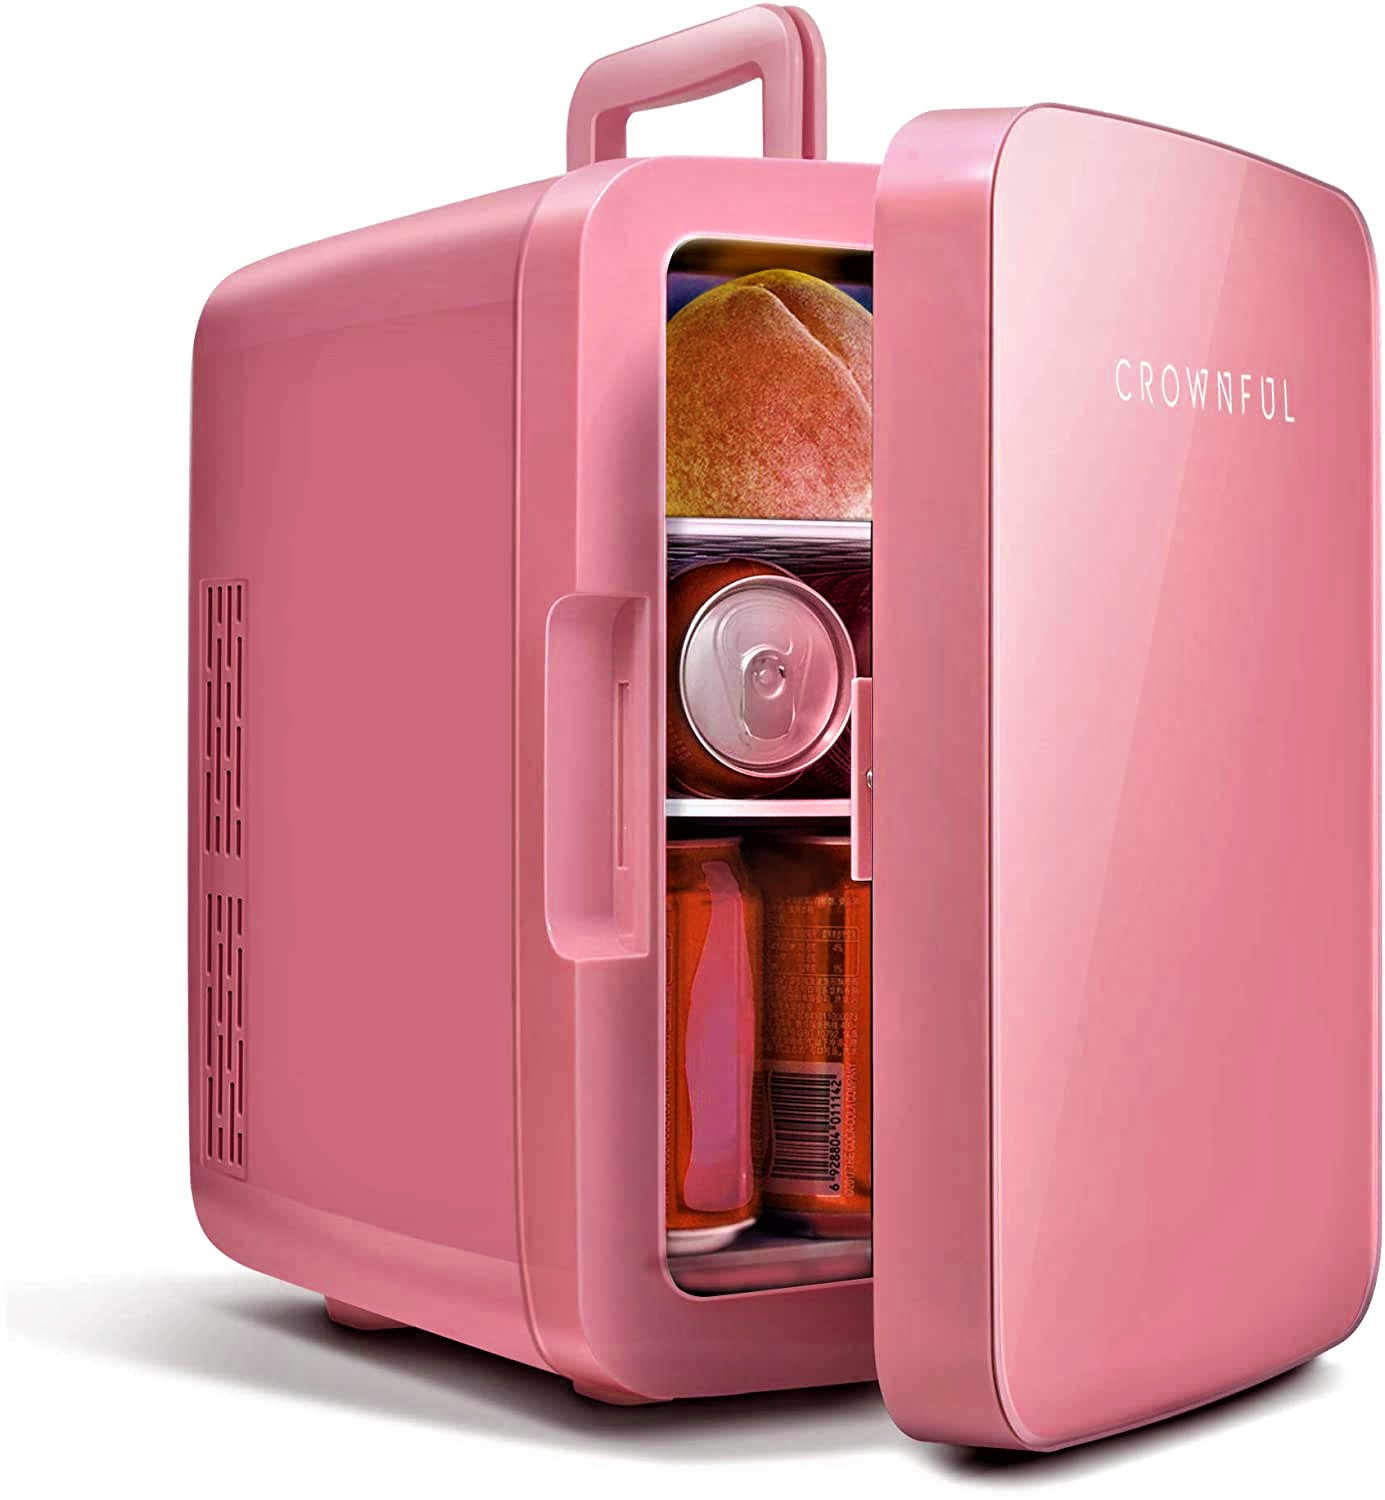 Crownful Mini Fridge, 10 Liter/12 Can Portable Cooler and Warmer